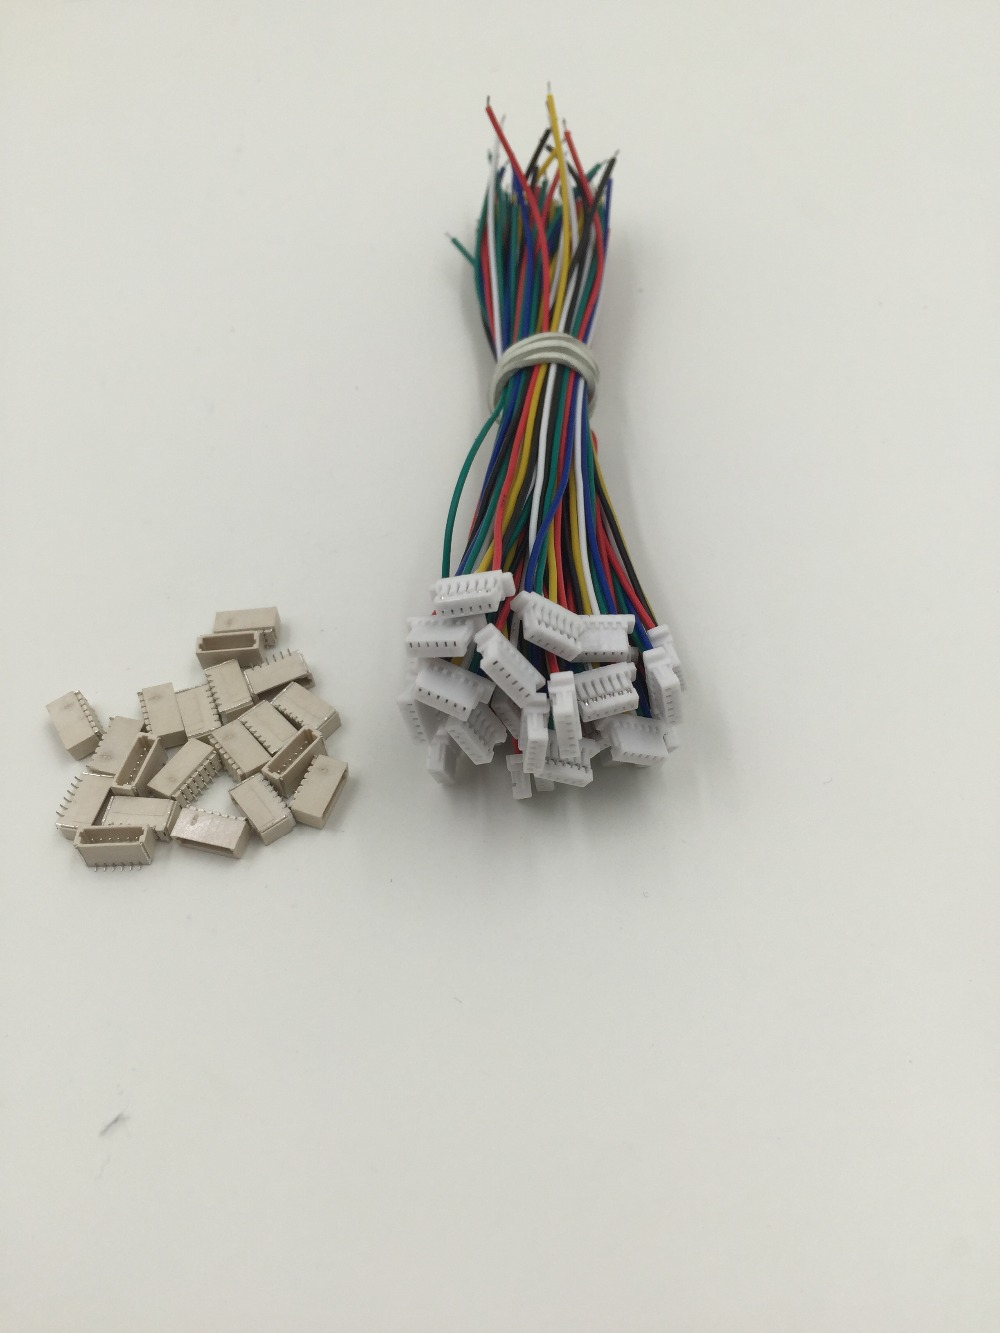 Micro Mini JST-SH 1.0mm 6-Pin SH Male Female Connector with wire 10cm x 10 SETS